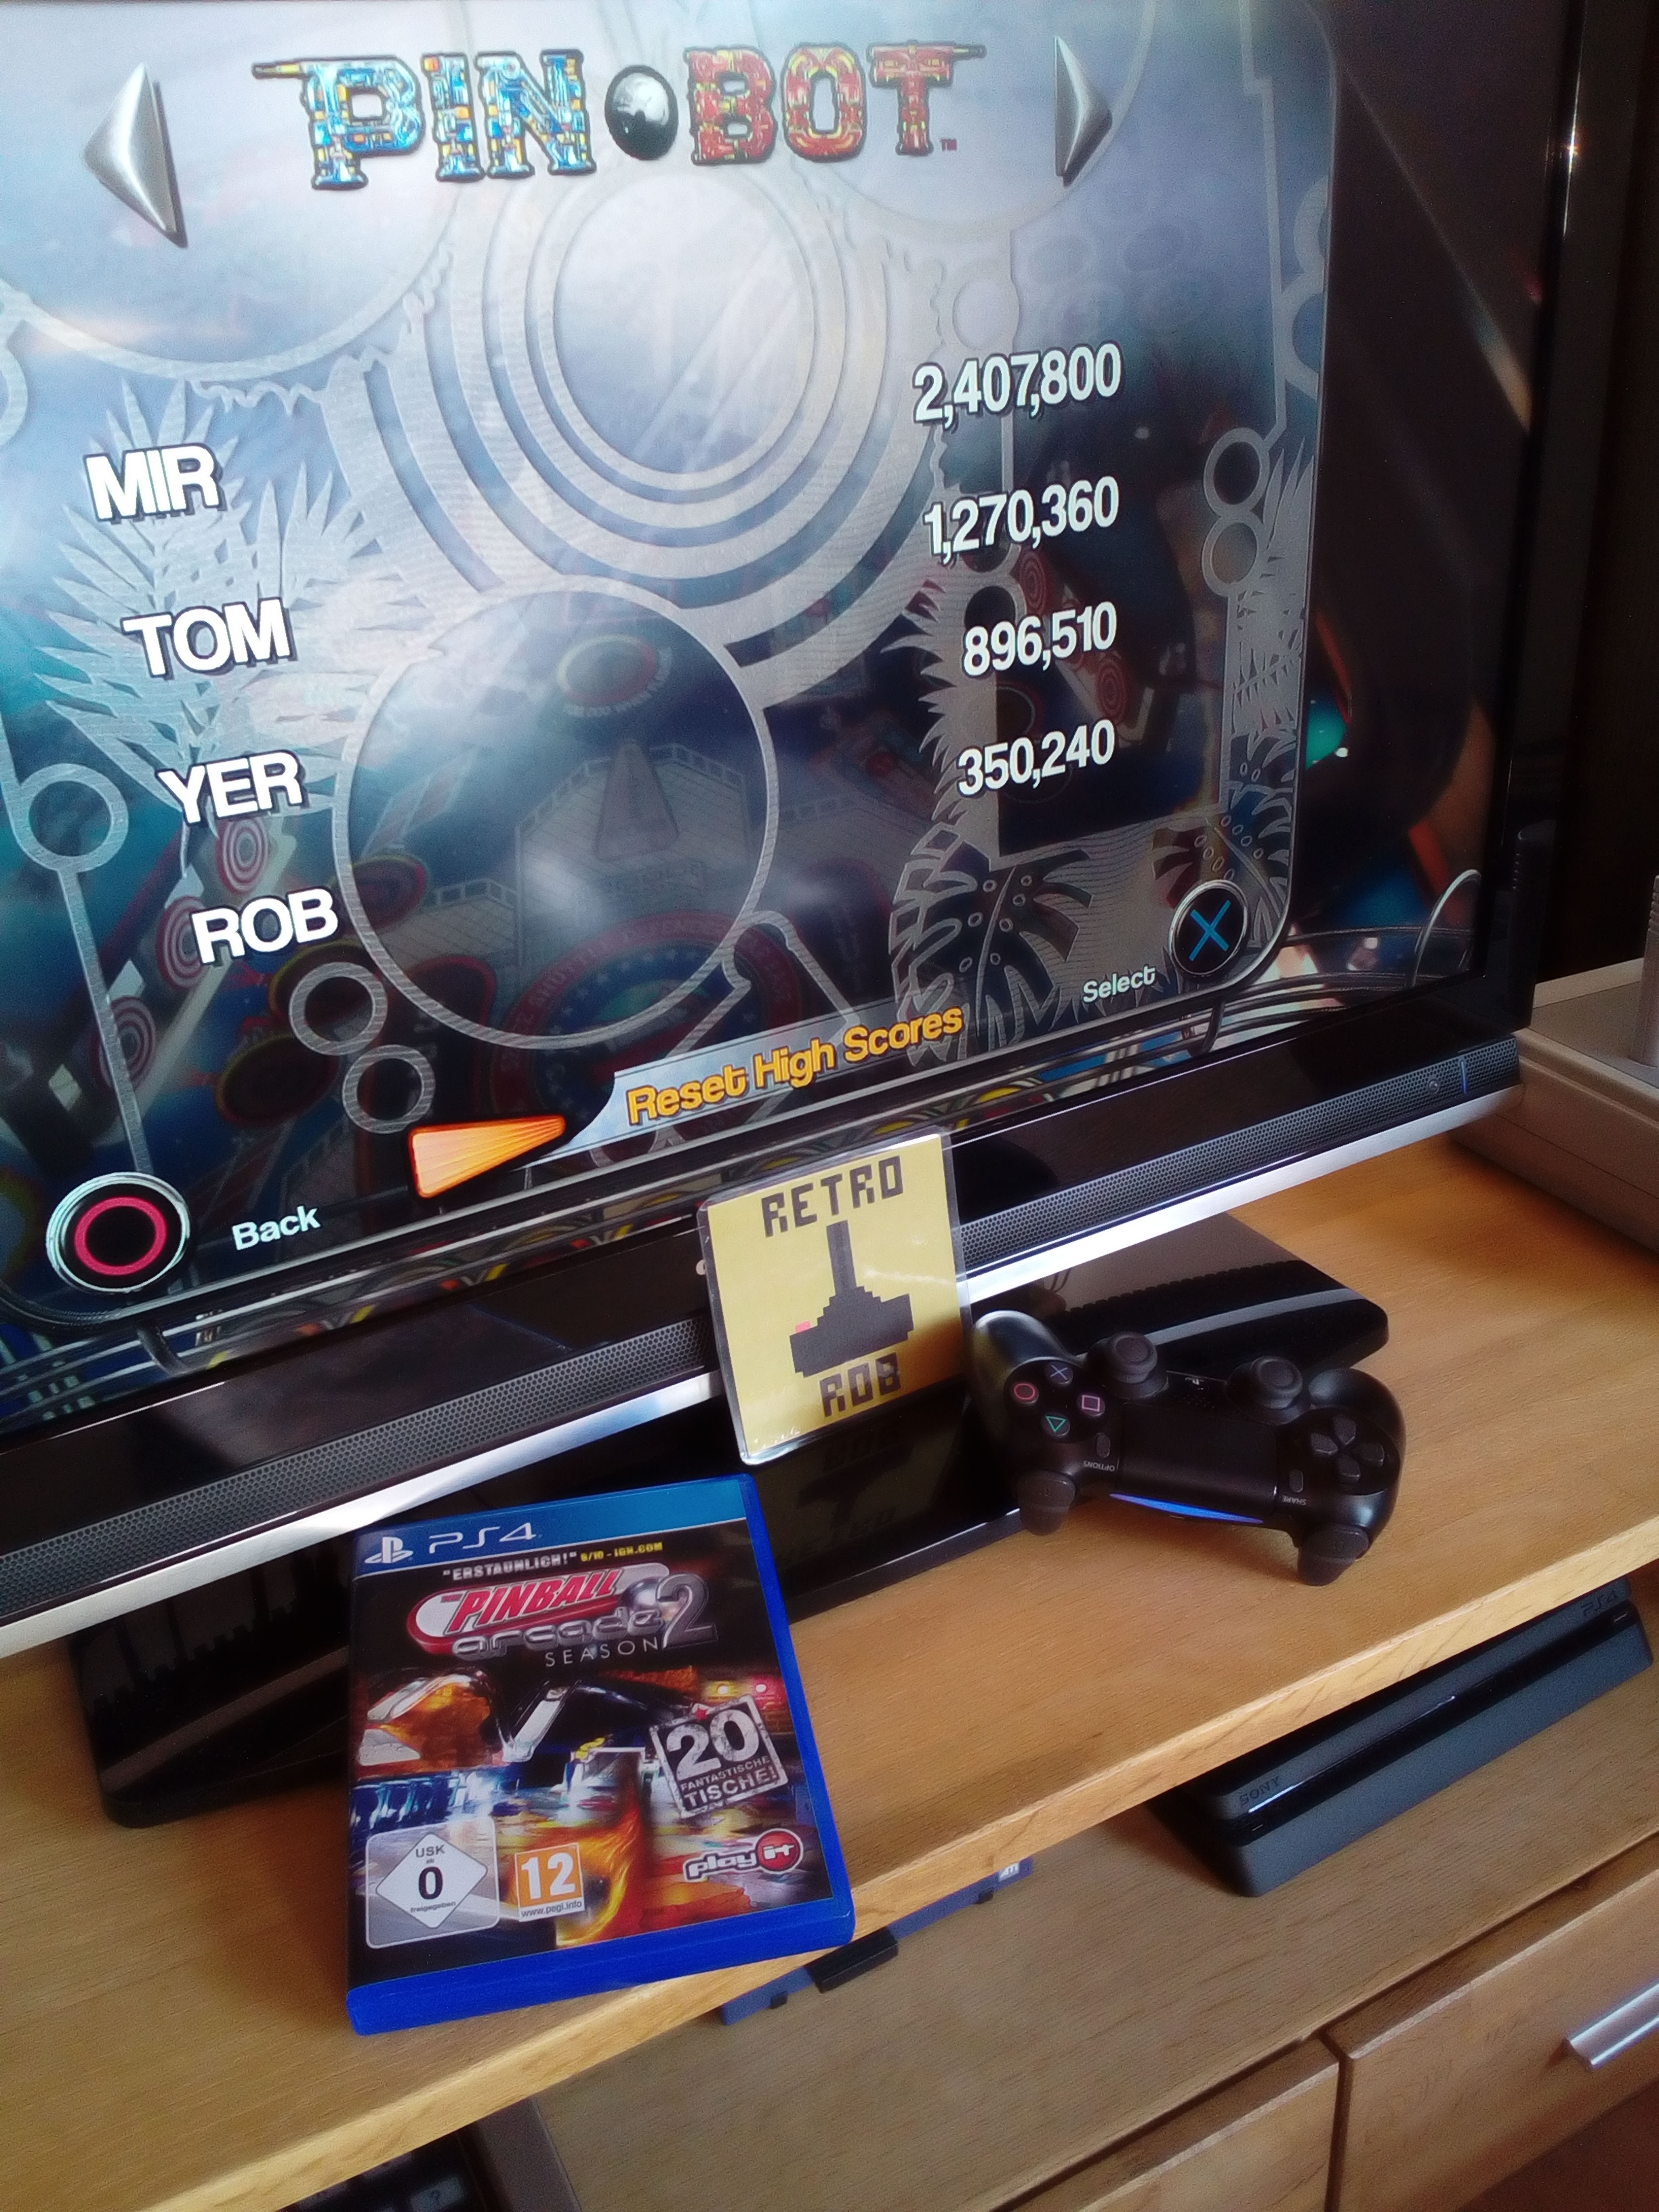 RetroRob: Pinball Arcade: Pin*Bot (Playstation 4) 350,240 points on 2020-05-05 12:25:33